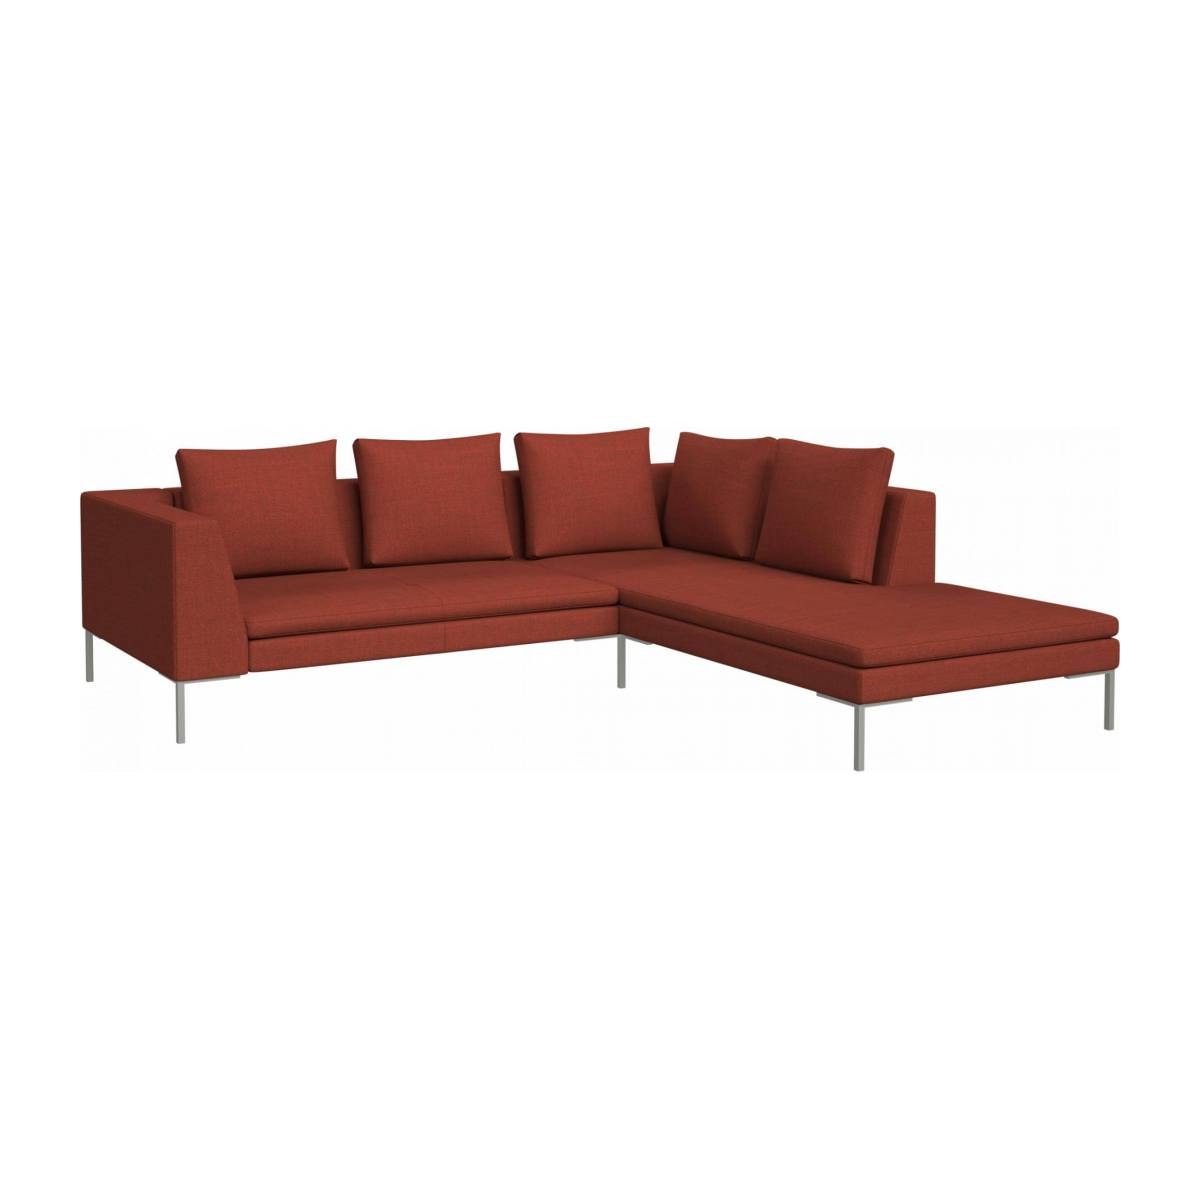 2 seater sofa with chaise longue on the right in Fasoli fabric, warm red rock  n°2